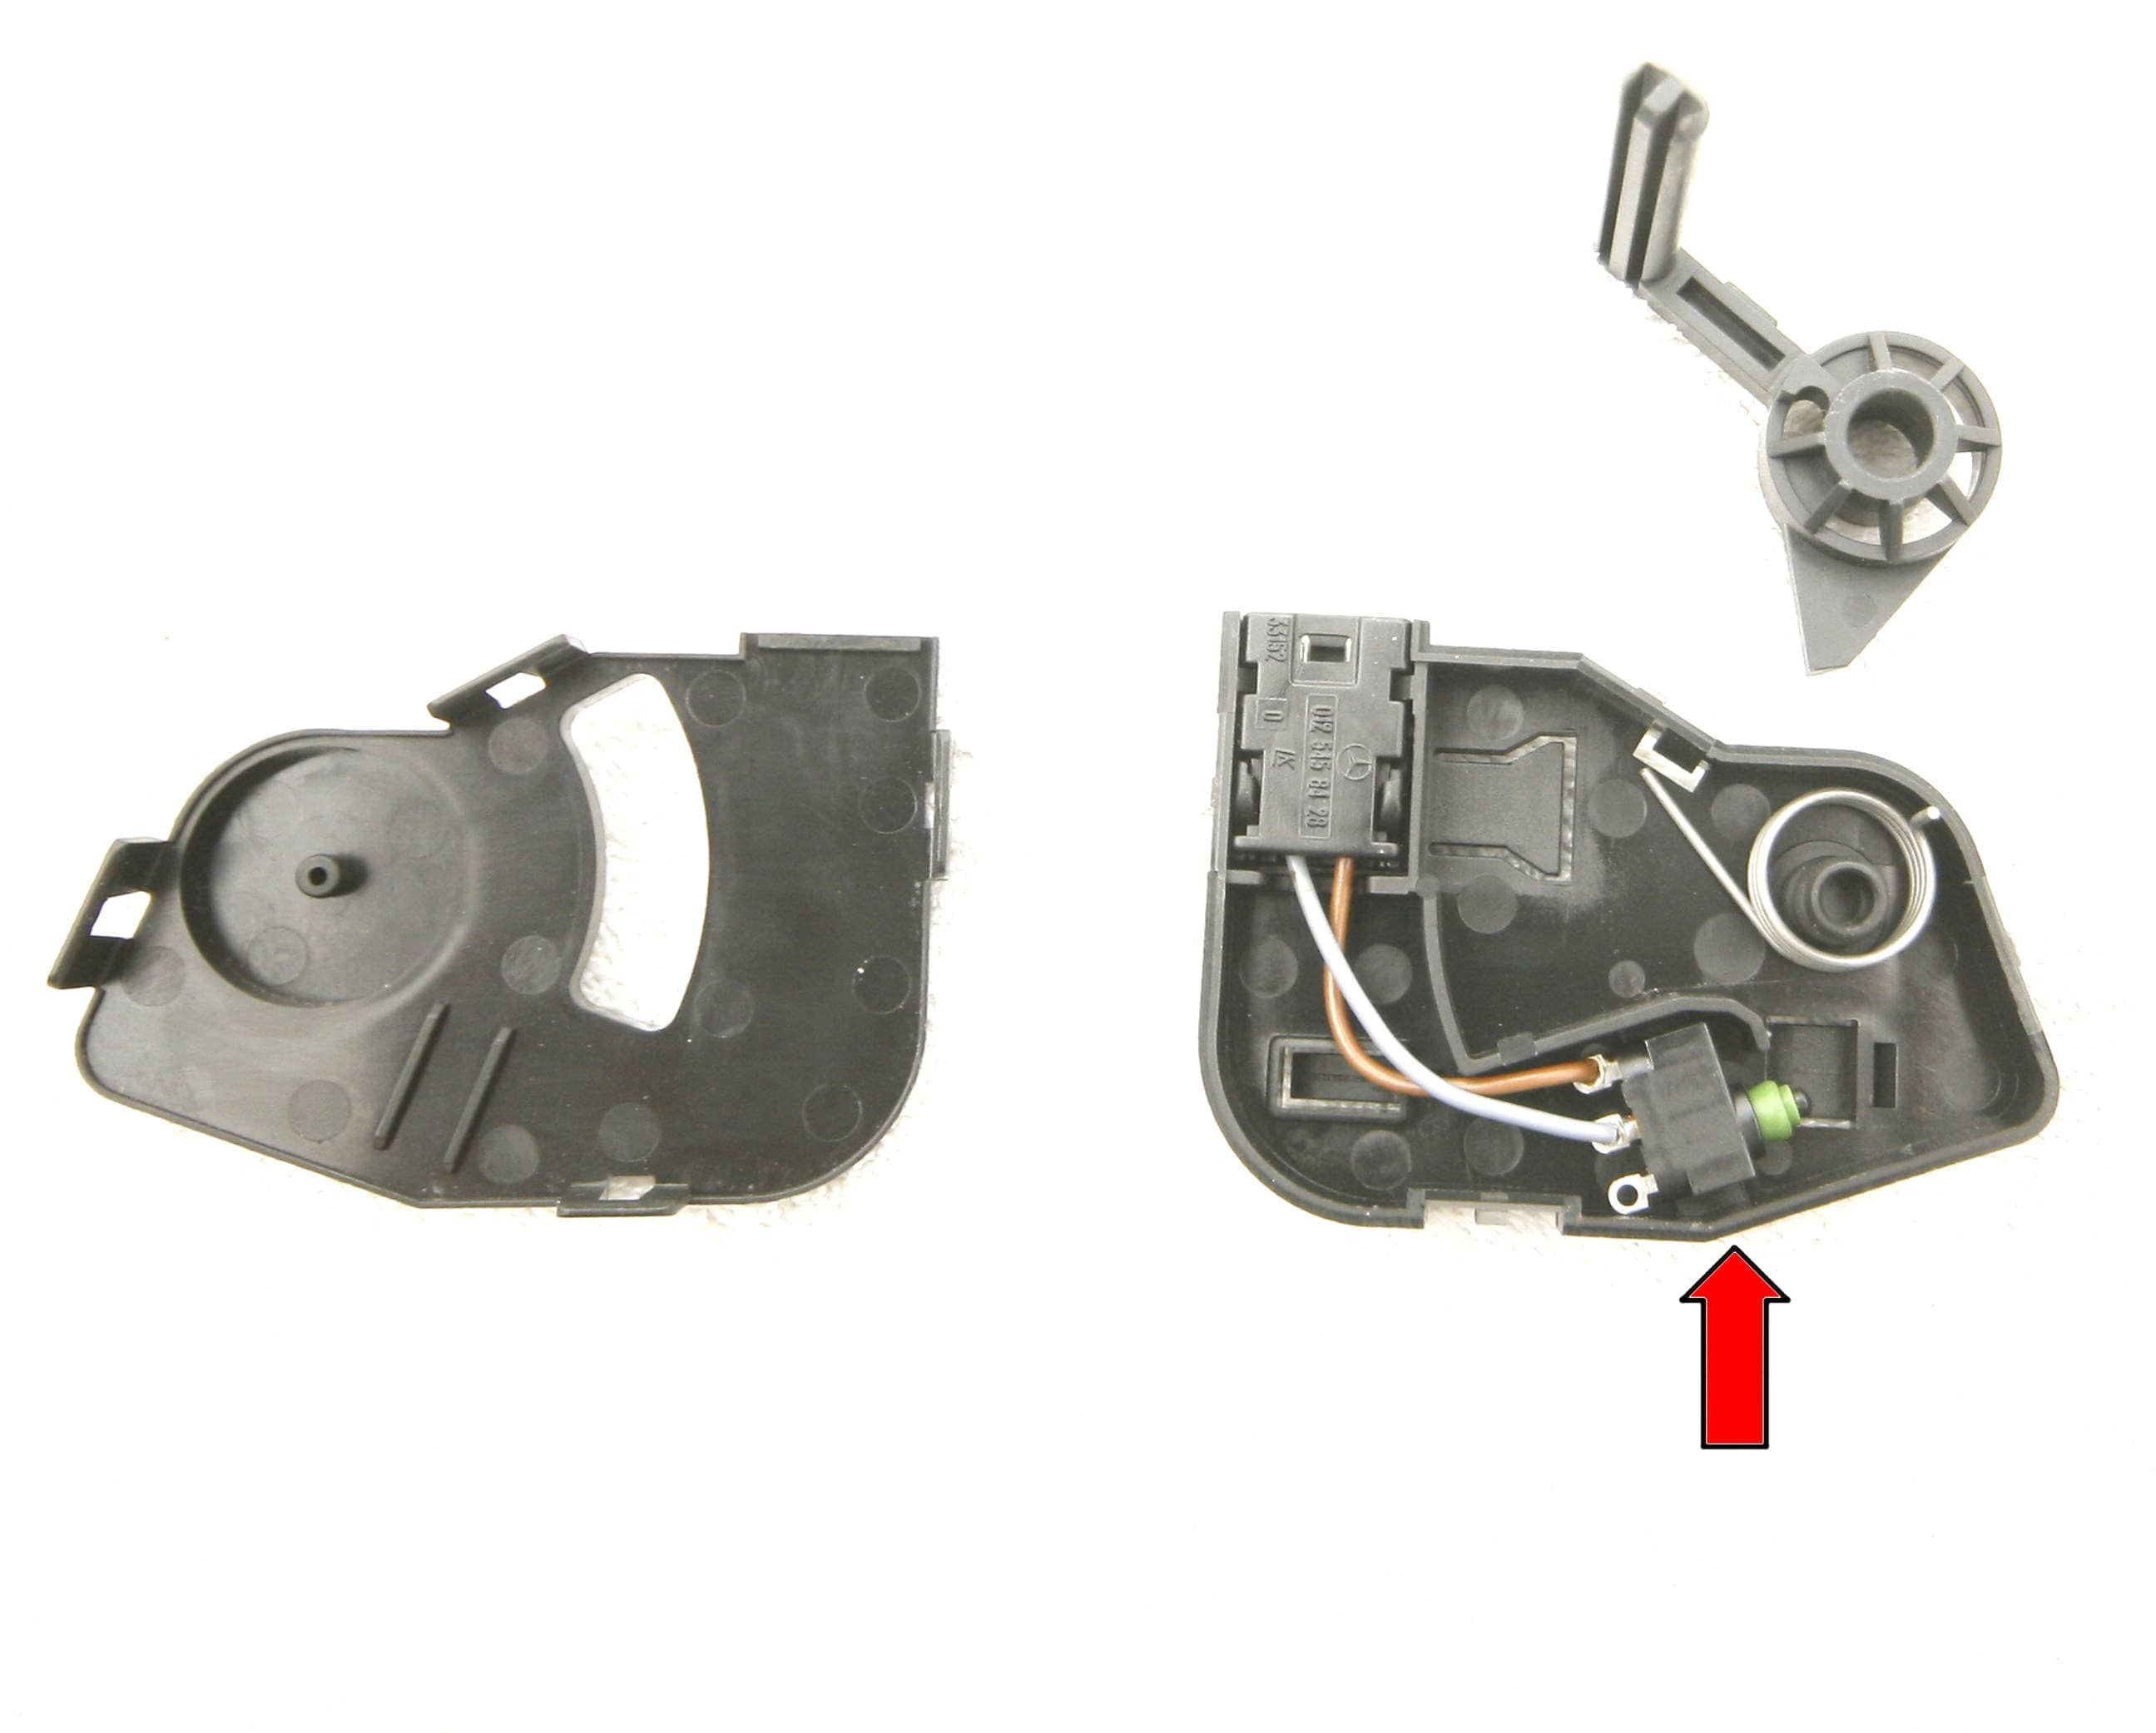 Mercedes Benz Slk 230 Vario Roof Switches Location And Id 1998 2001 Slk230 Fuse Diagram Large Image Extra